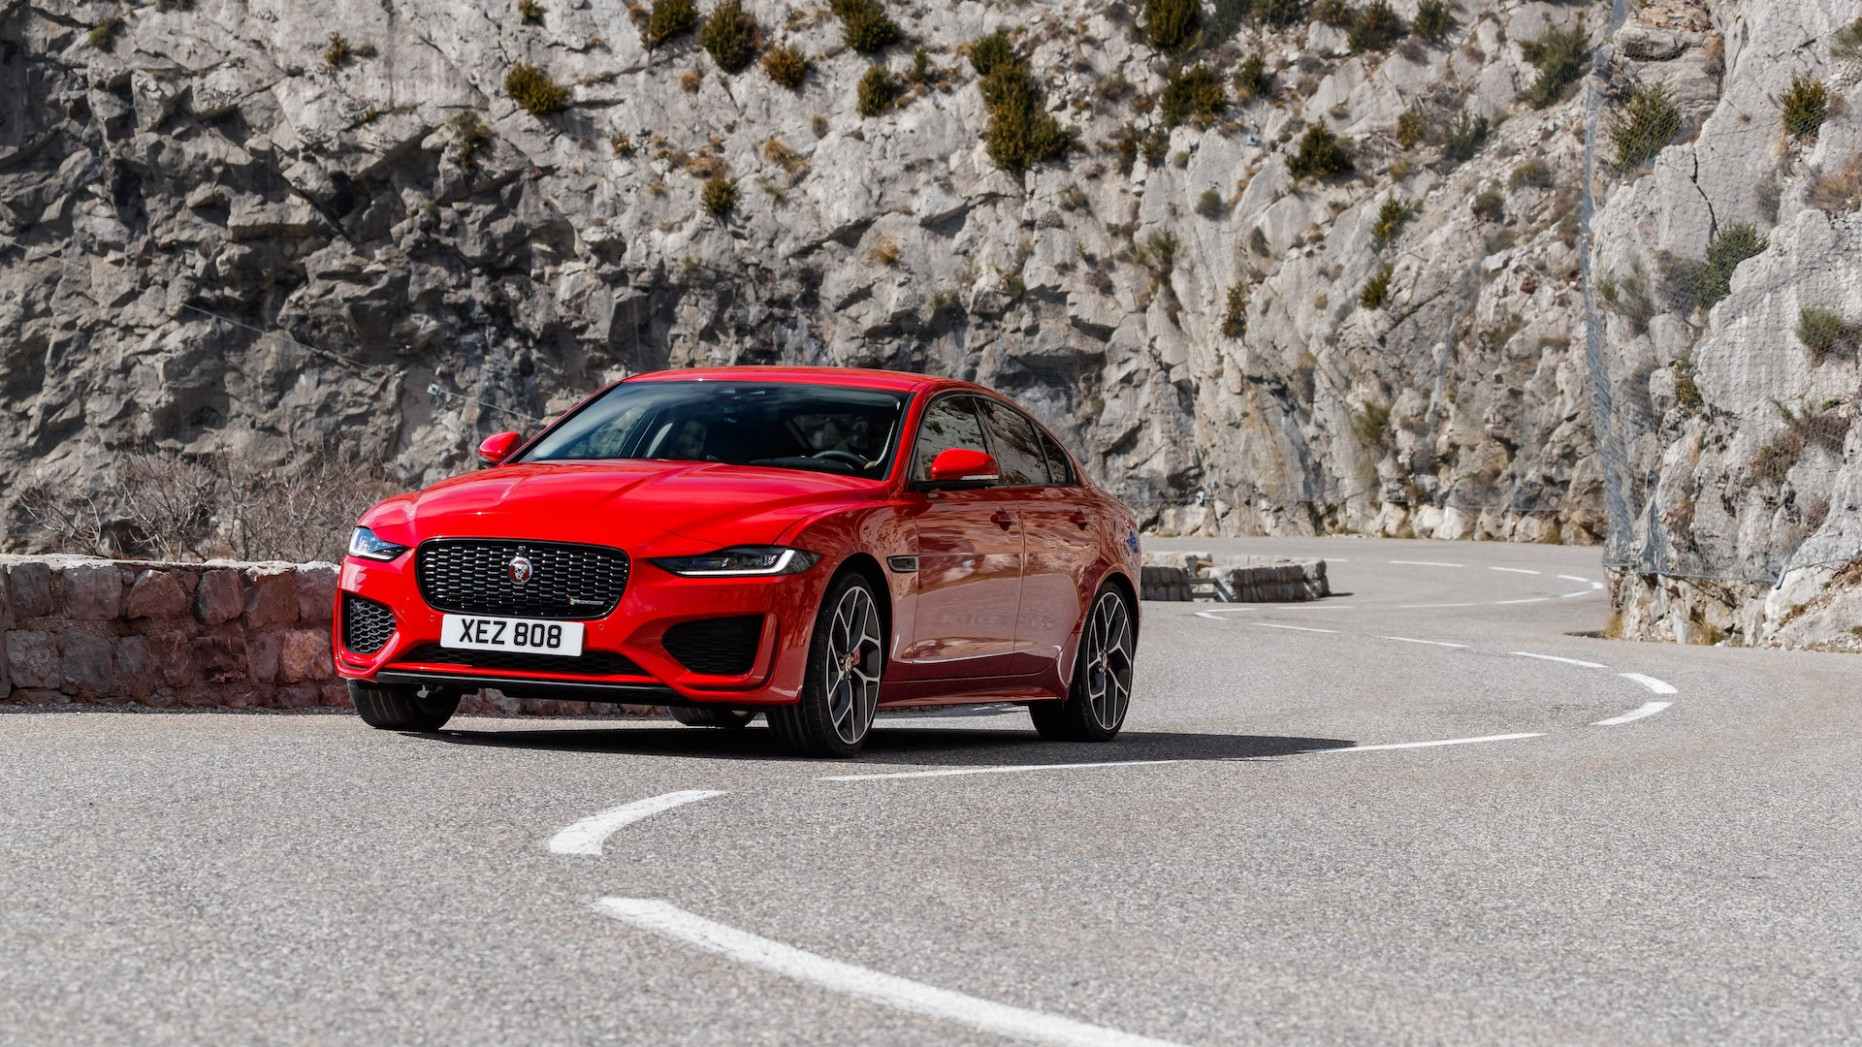 First drive review: The 6 Jaguar XE puts gravity on hold - jaguar 2020 model year